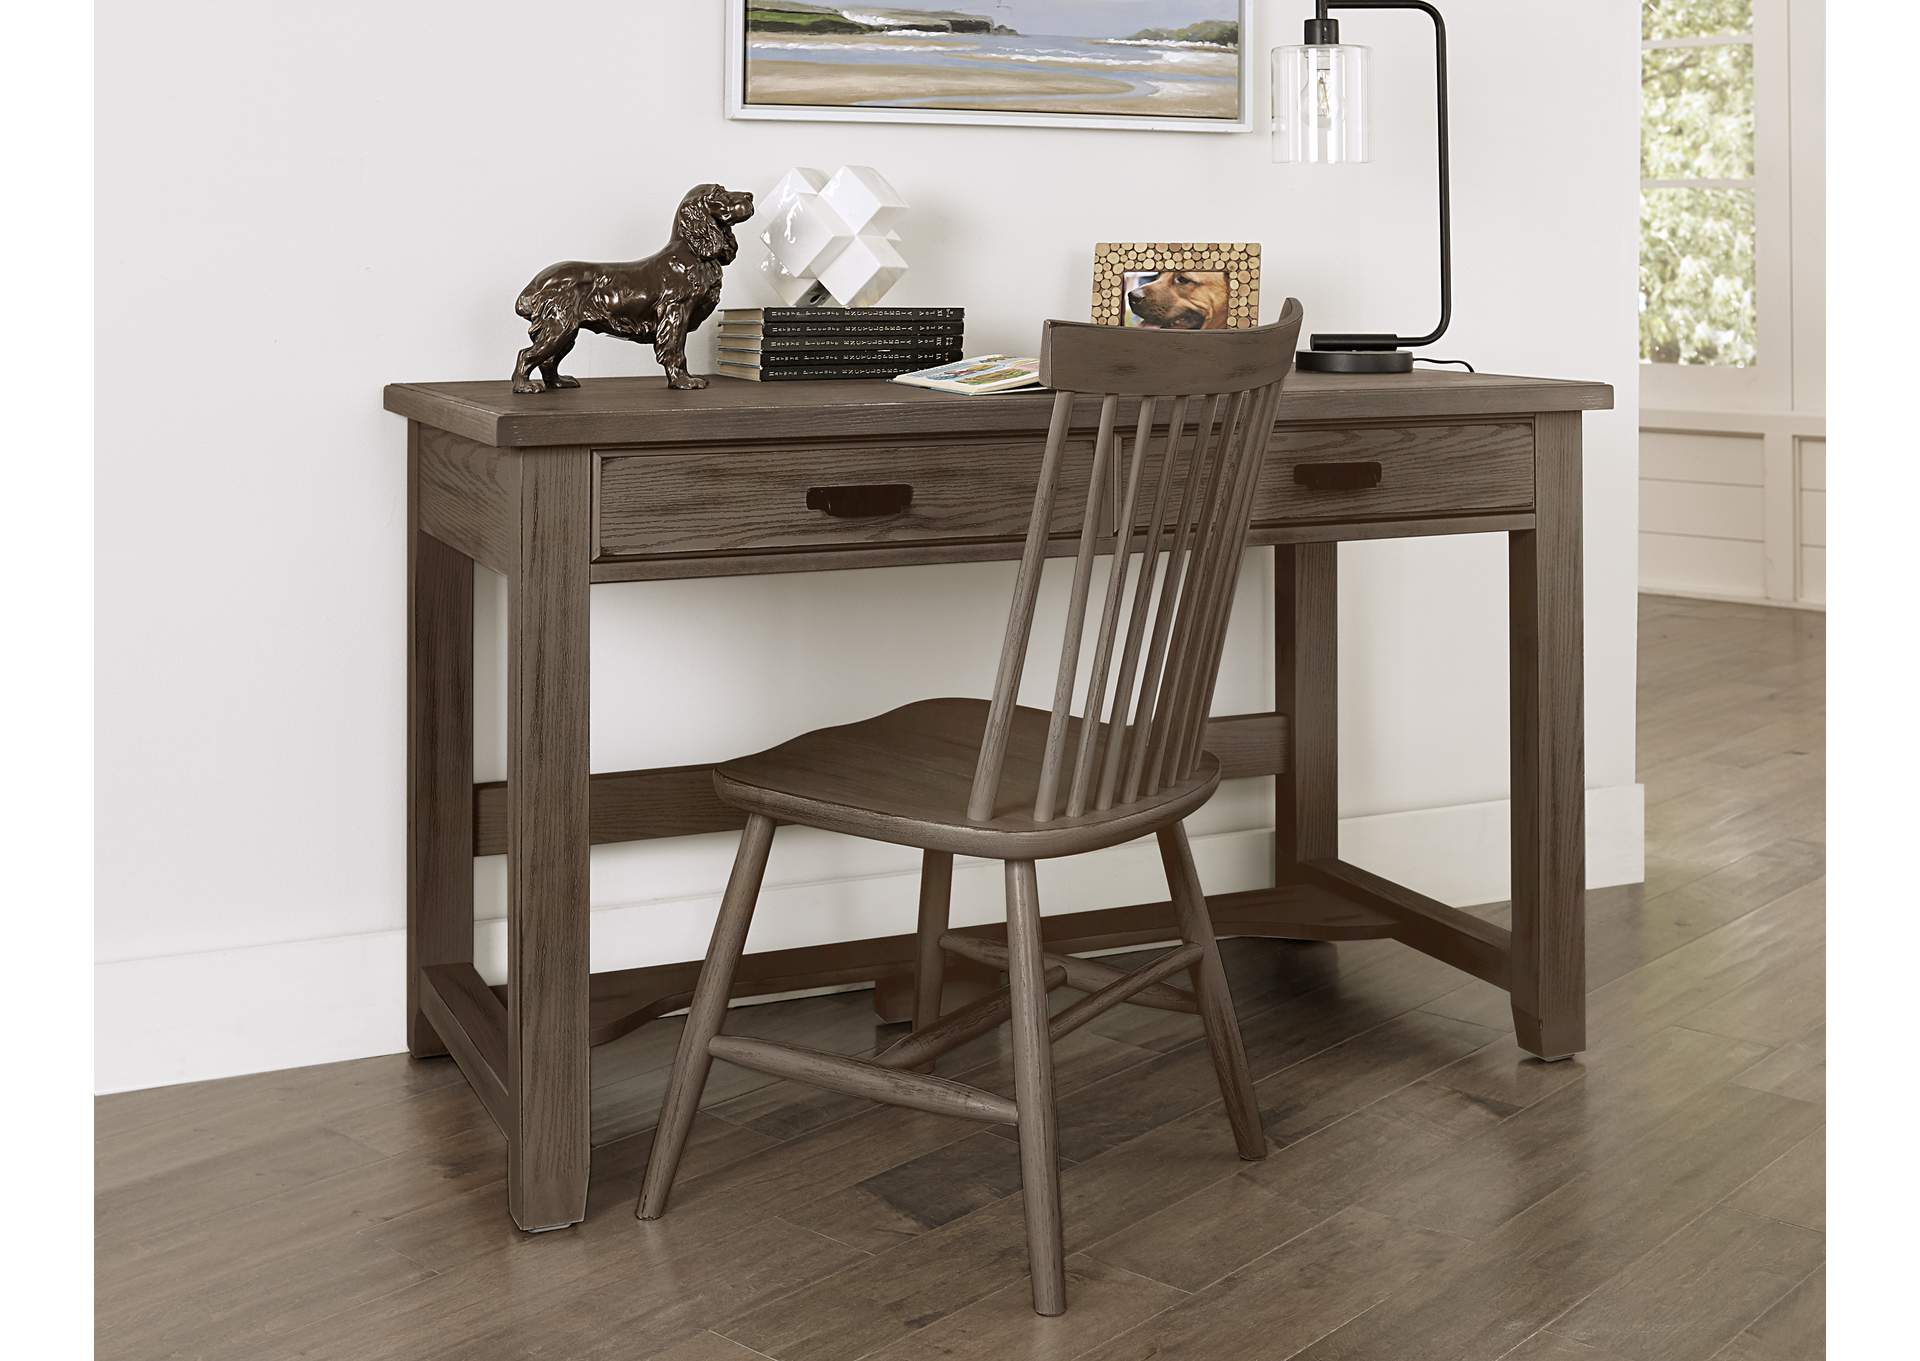 740 - Bungalow Folkstone Desk Chair,Vaughan-Bassett